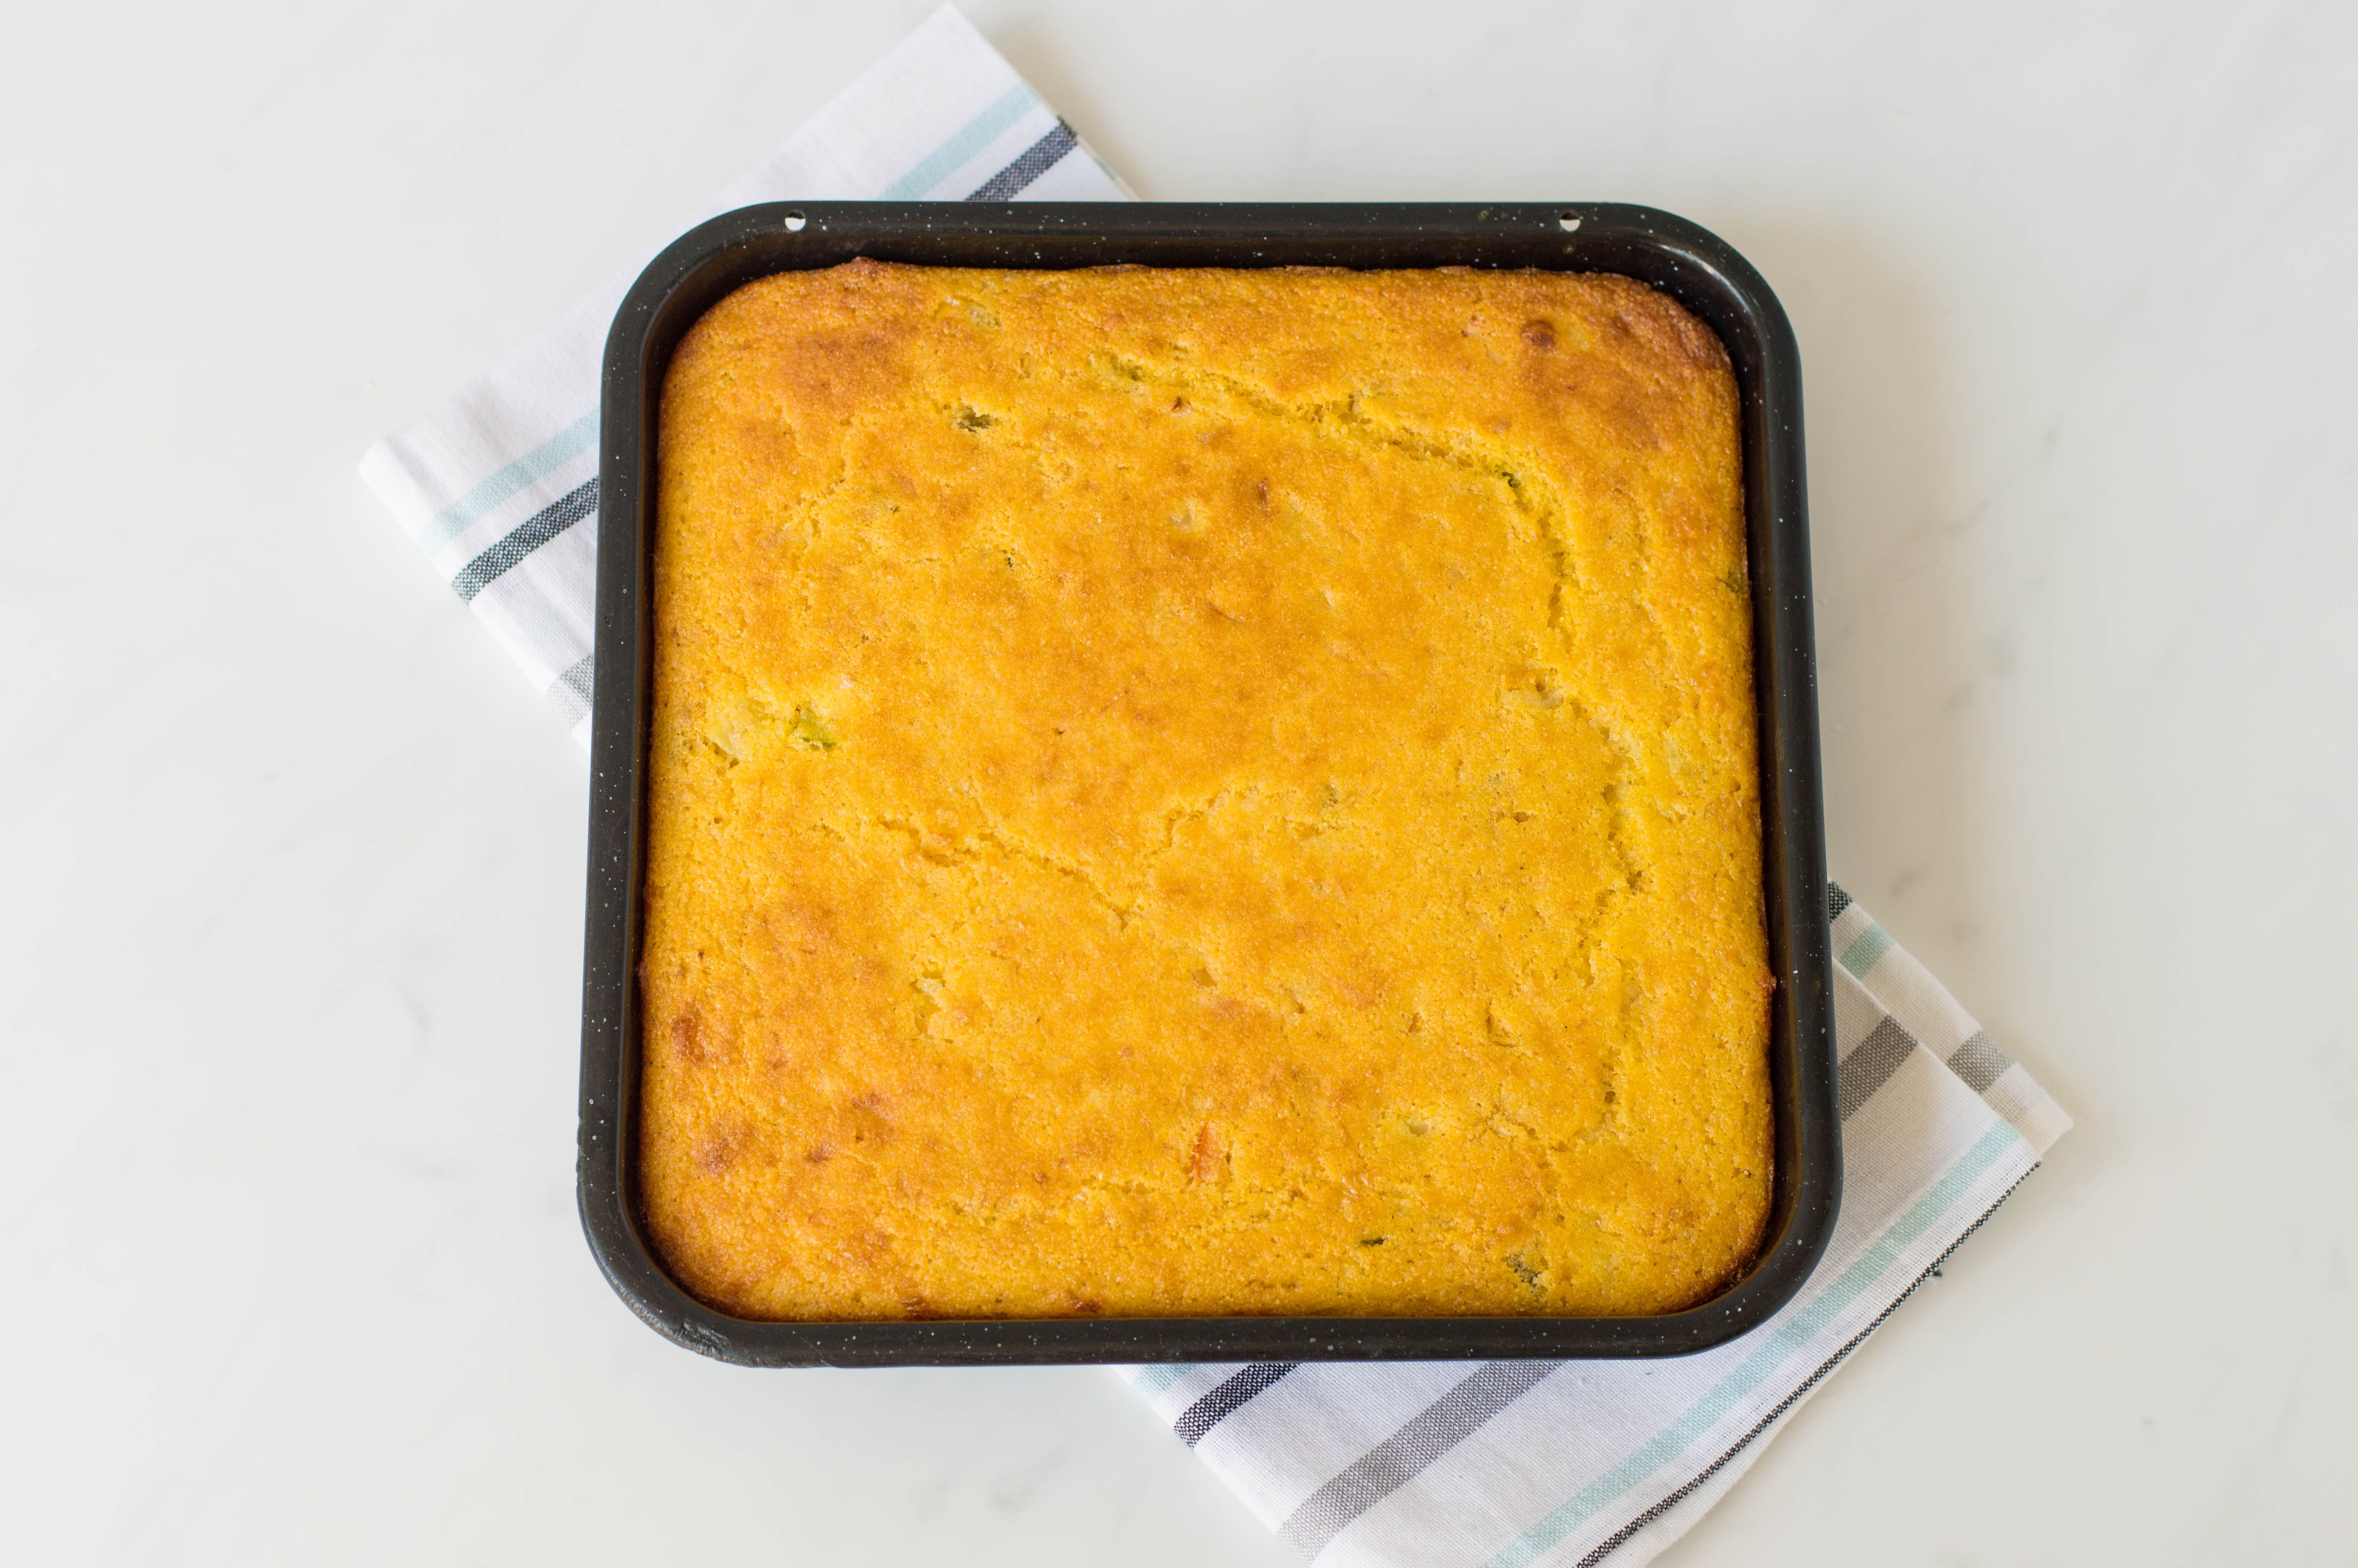 Easy Mexican cornbread baked in a square pan